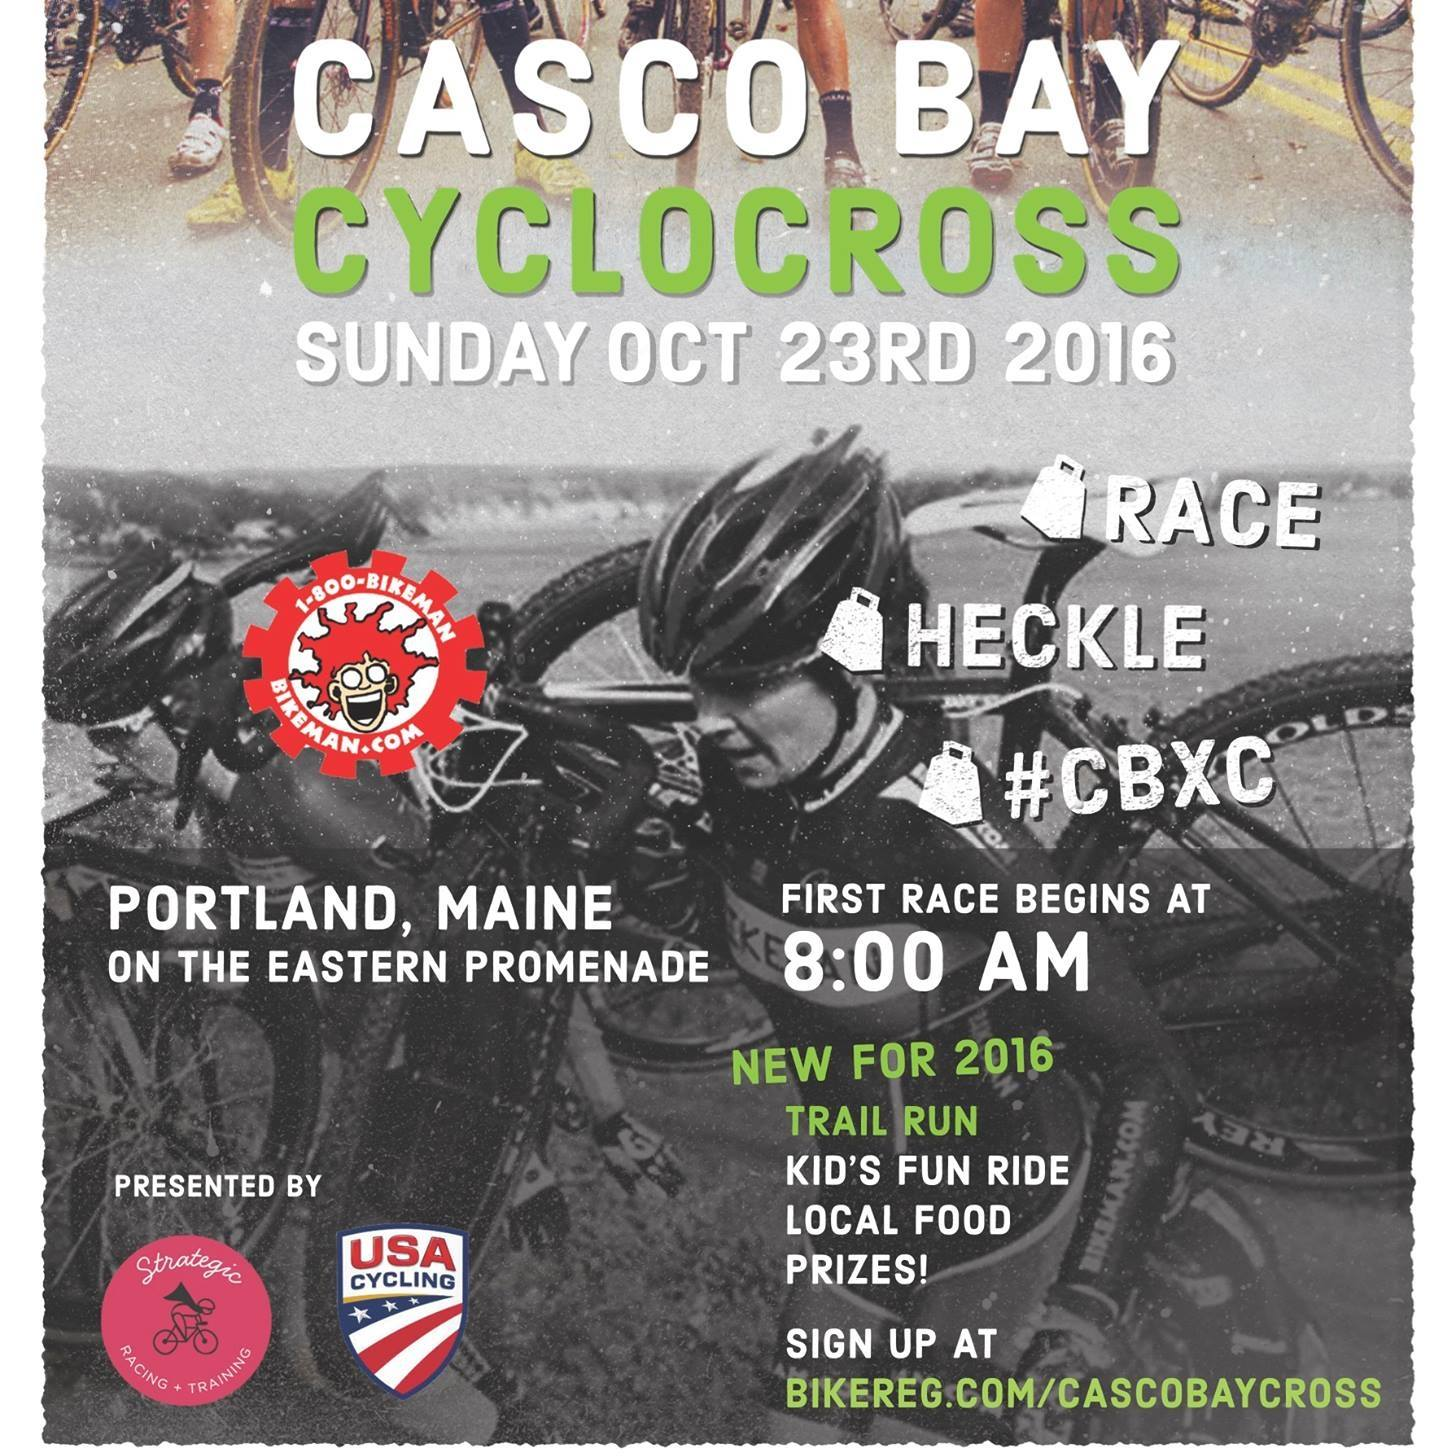 An annual grassroots cyclocross race on the beautiful Eastern Promenade in Portland, Maine. The venue features stunning views of Casco Bay. The course weaves throughout the Prom and features manmade and natural obstacles, steep climbs, and a paved start/finish. Join us Sunday, October 23rd to experience this one-of-a-kind course for yourself:Register for the category that best matches your ability level and age bracket.CBCX is permitted by the City of Portland and sanctioned by USA Cycling. USA Cycling rules apply.    Visit  http://www.strategic-racing.com/cyclocross/ for more information and to location street closure information.